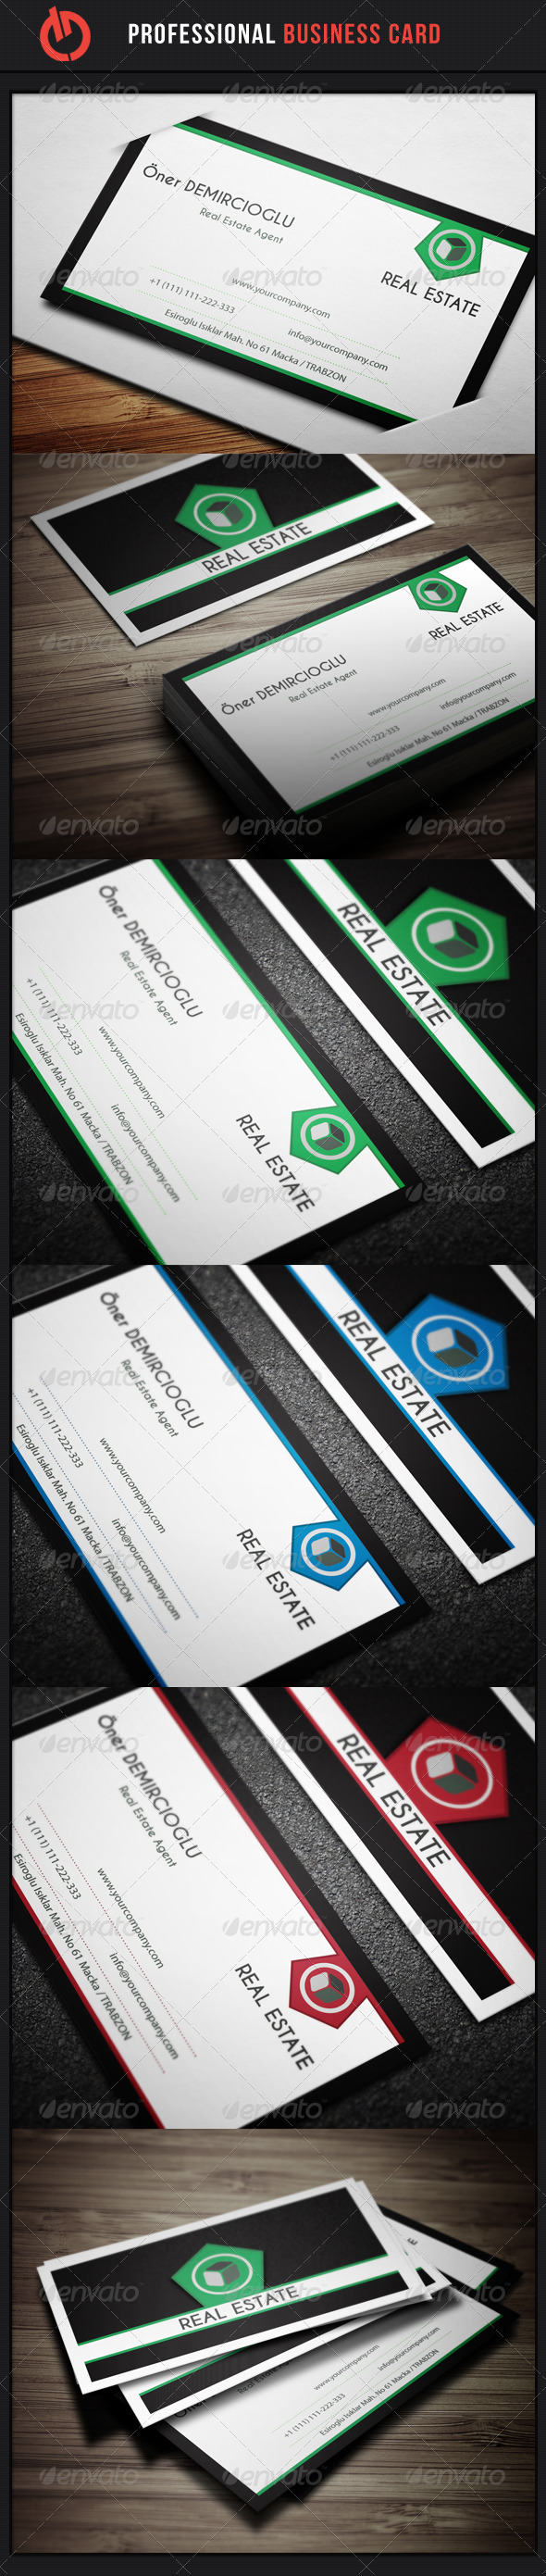 GraphicRiver Business Card 14 3591633